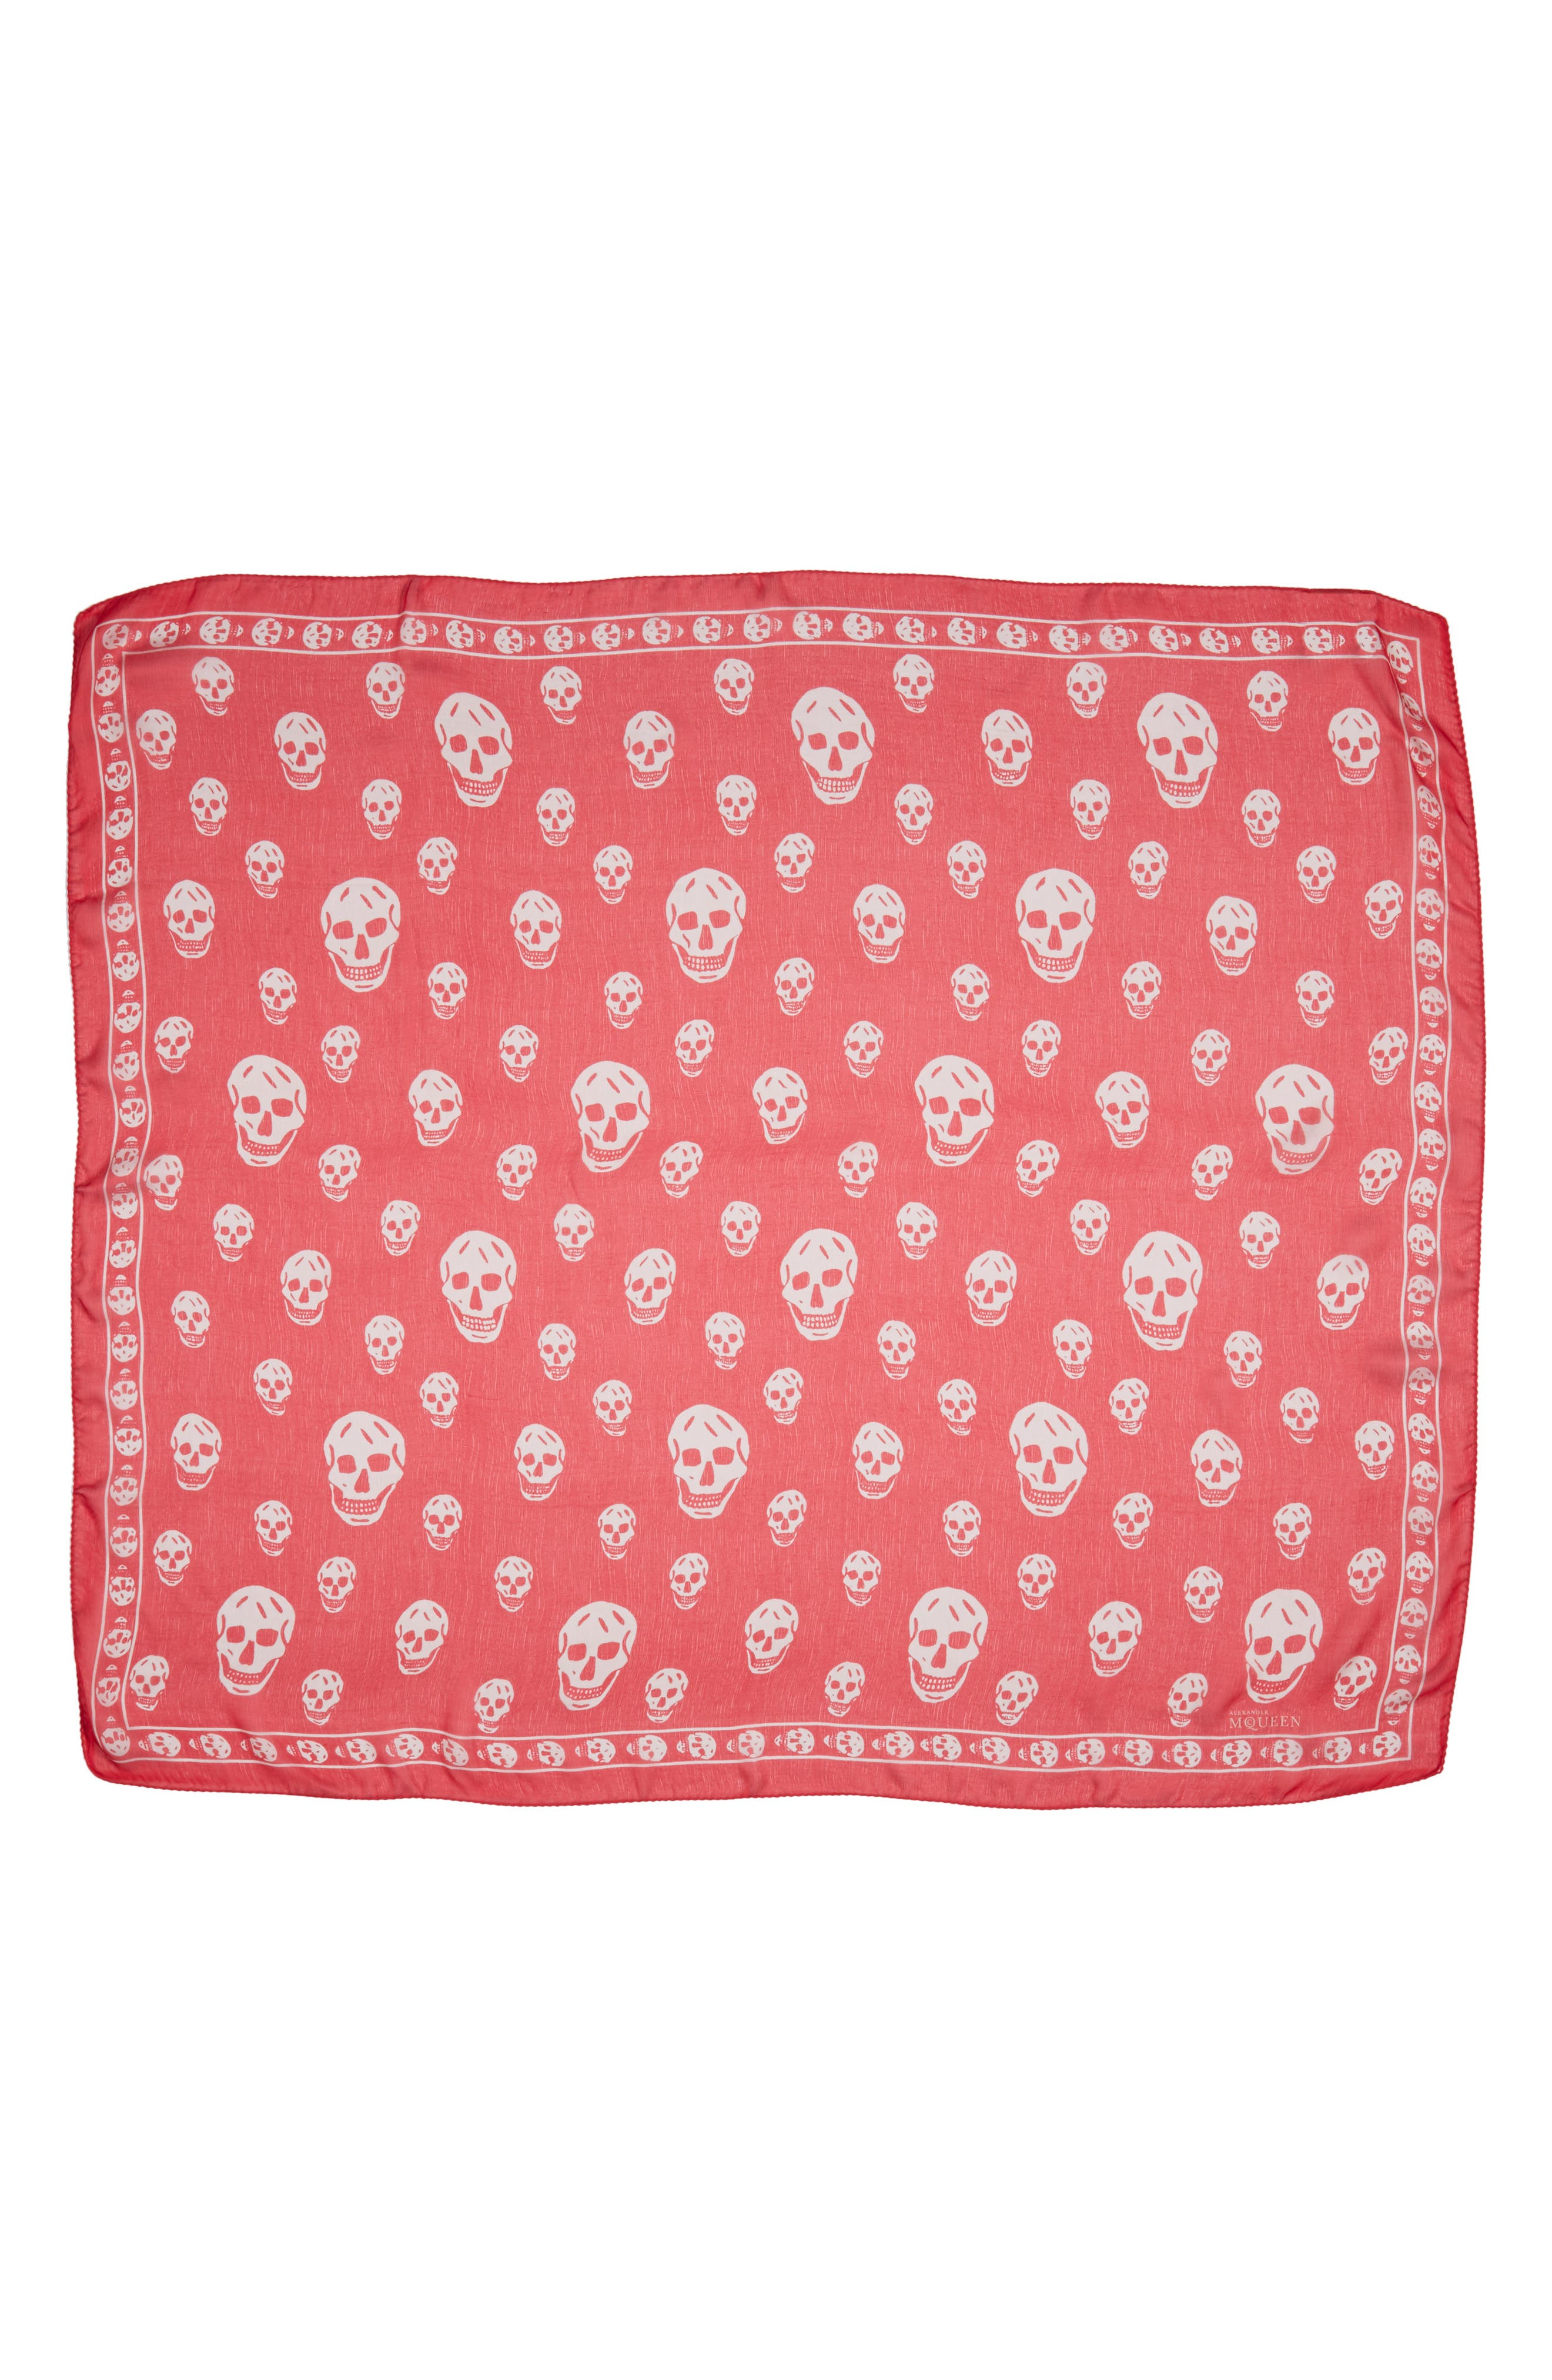 'Skull' Chiffon Scarf,                             Main thumbnail 1, color,                             Coral/ Beige